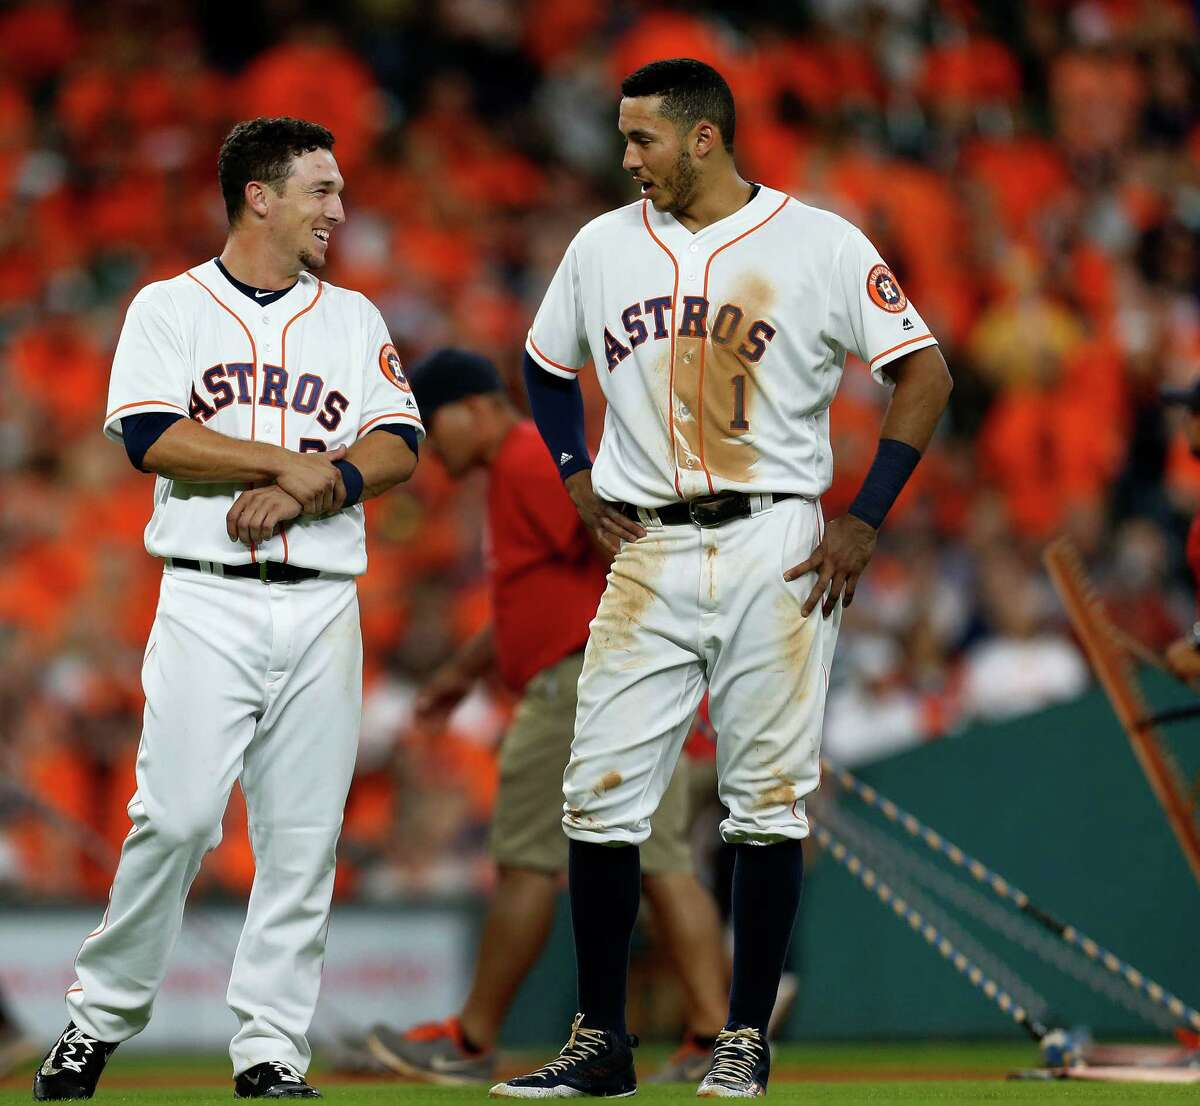 Houston Astros third baseman Alex Bregman (2) chats with shortstop Carlos Correa (1) after his flyout ending the sixth inning of an MLB game at Minute Maid Park, Monday, July 25, 2016, in Houston.